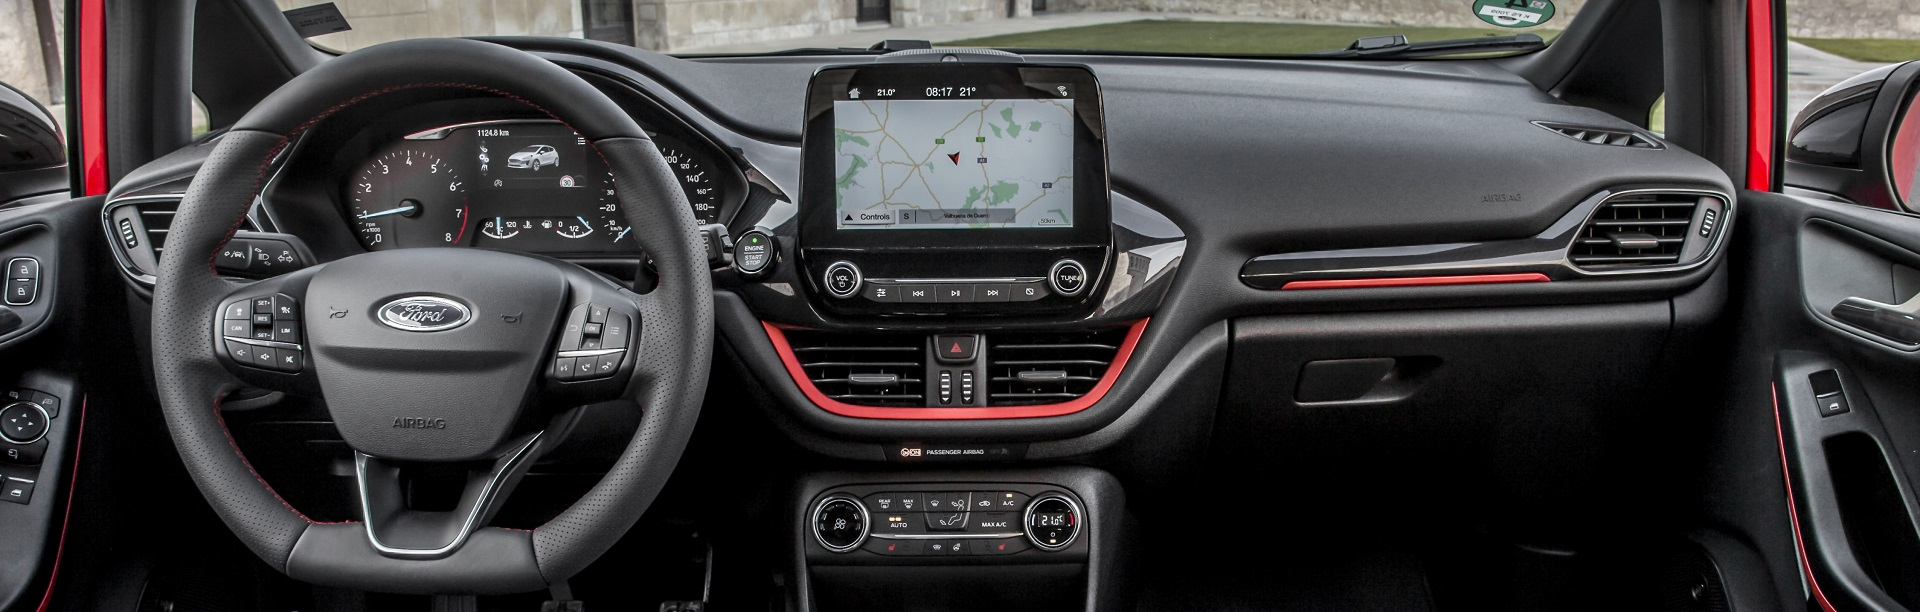 Ford Fiesta Cool & Connect 5-türig